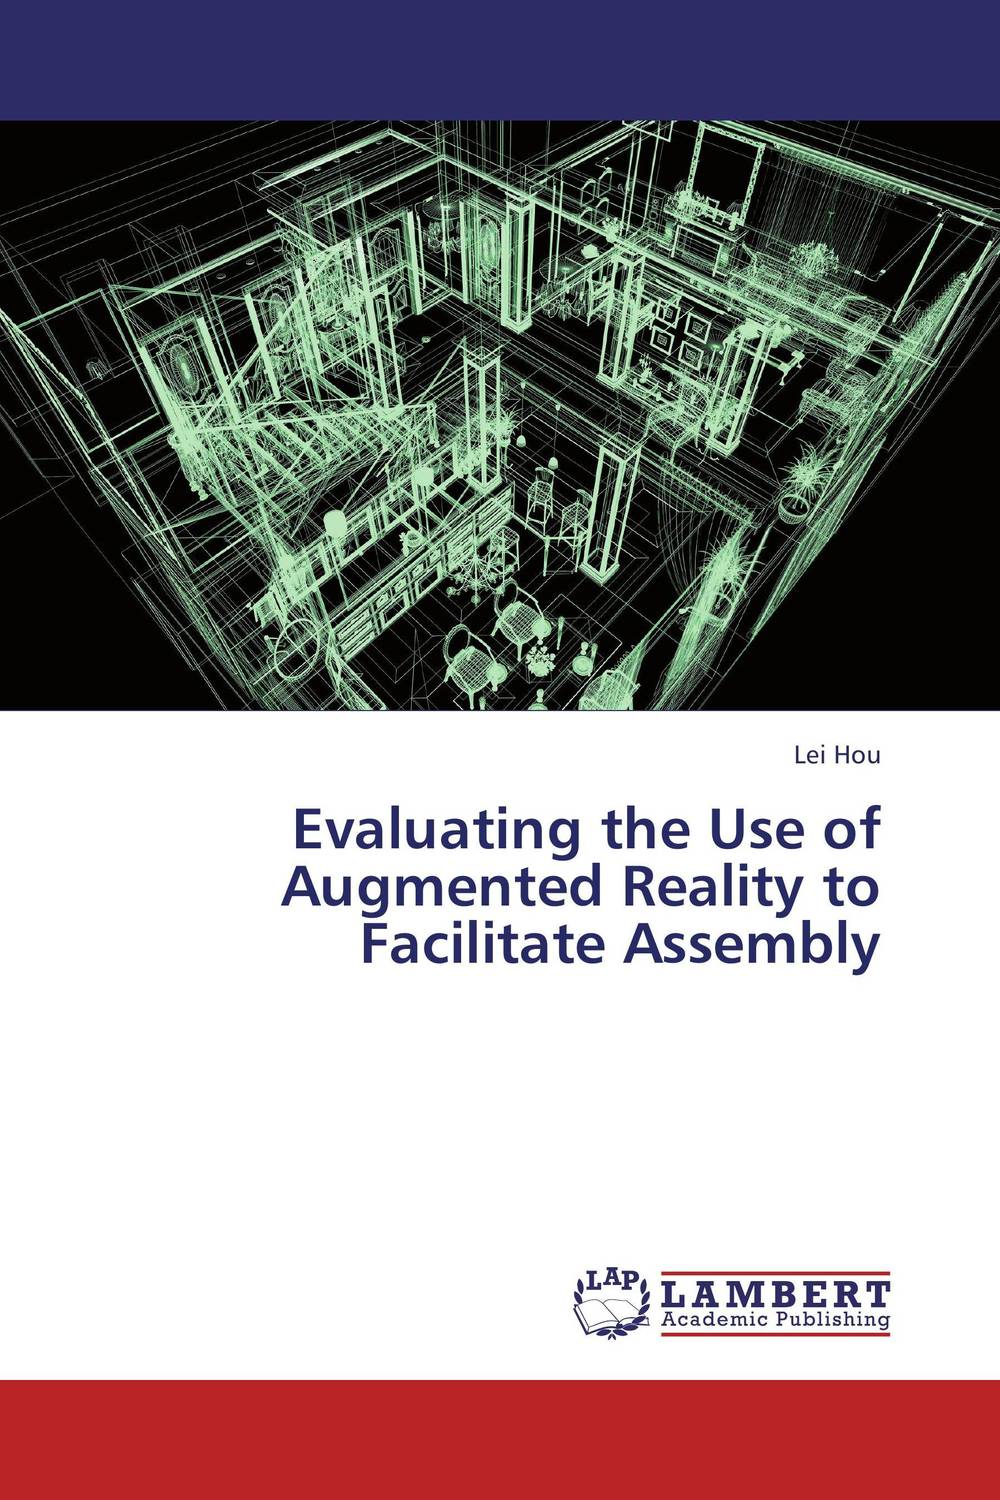 Evaluating the Use of Augmented Reality to Facilitate Assembly firas abdullah thweny al saedi and fadi khalid ibrahim al khalidi design of a three dimensional virtual reality environment